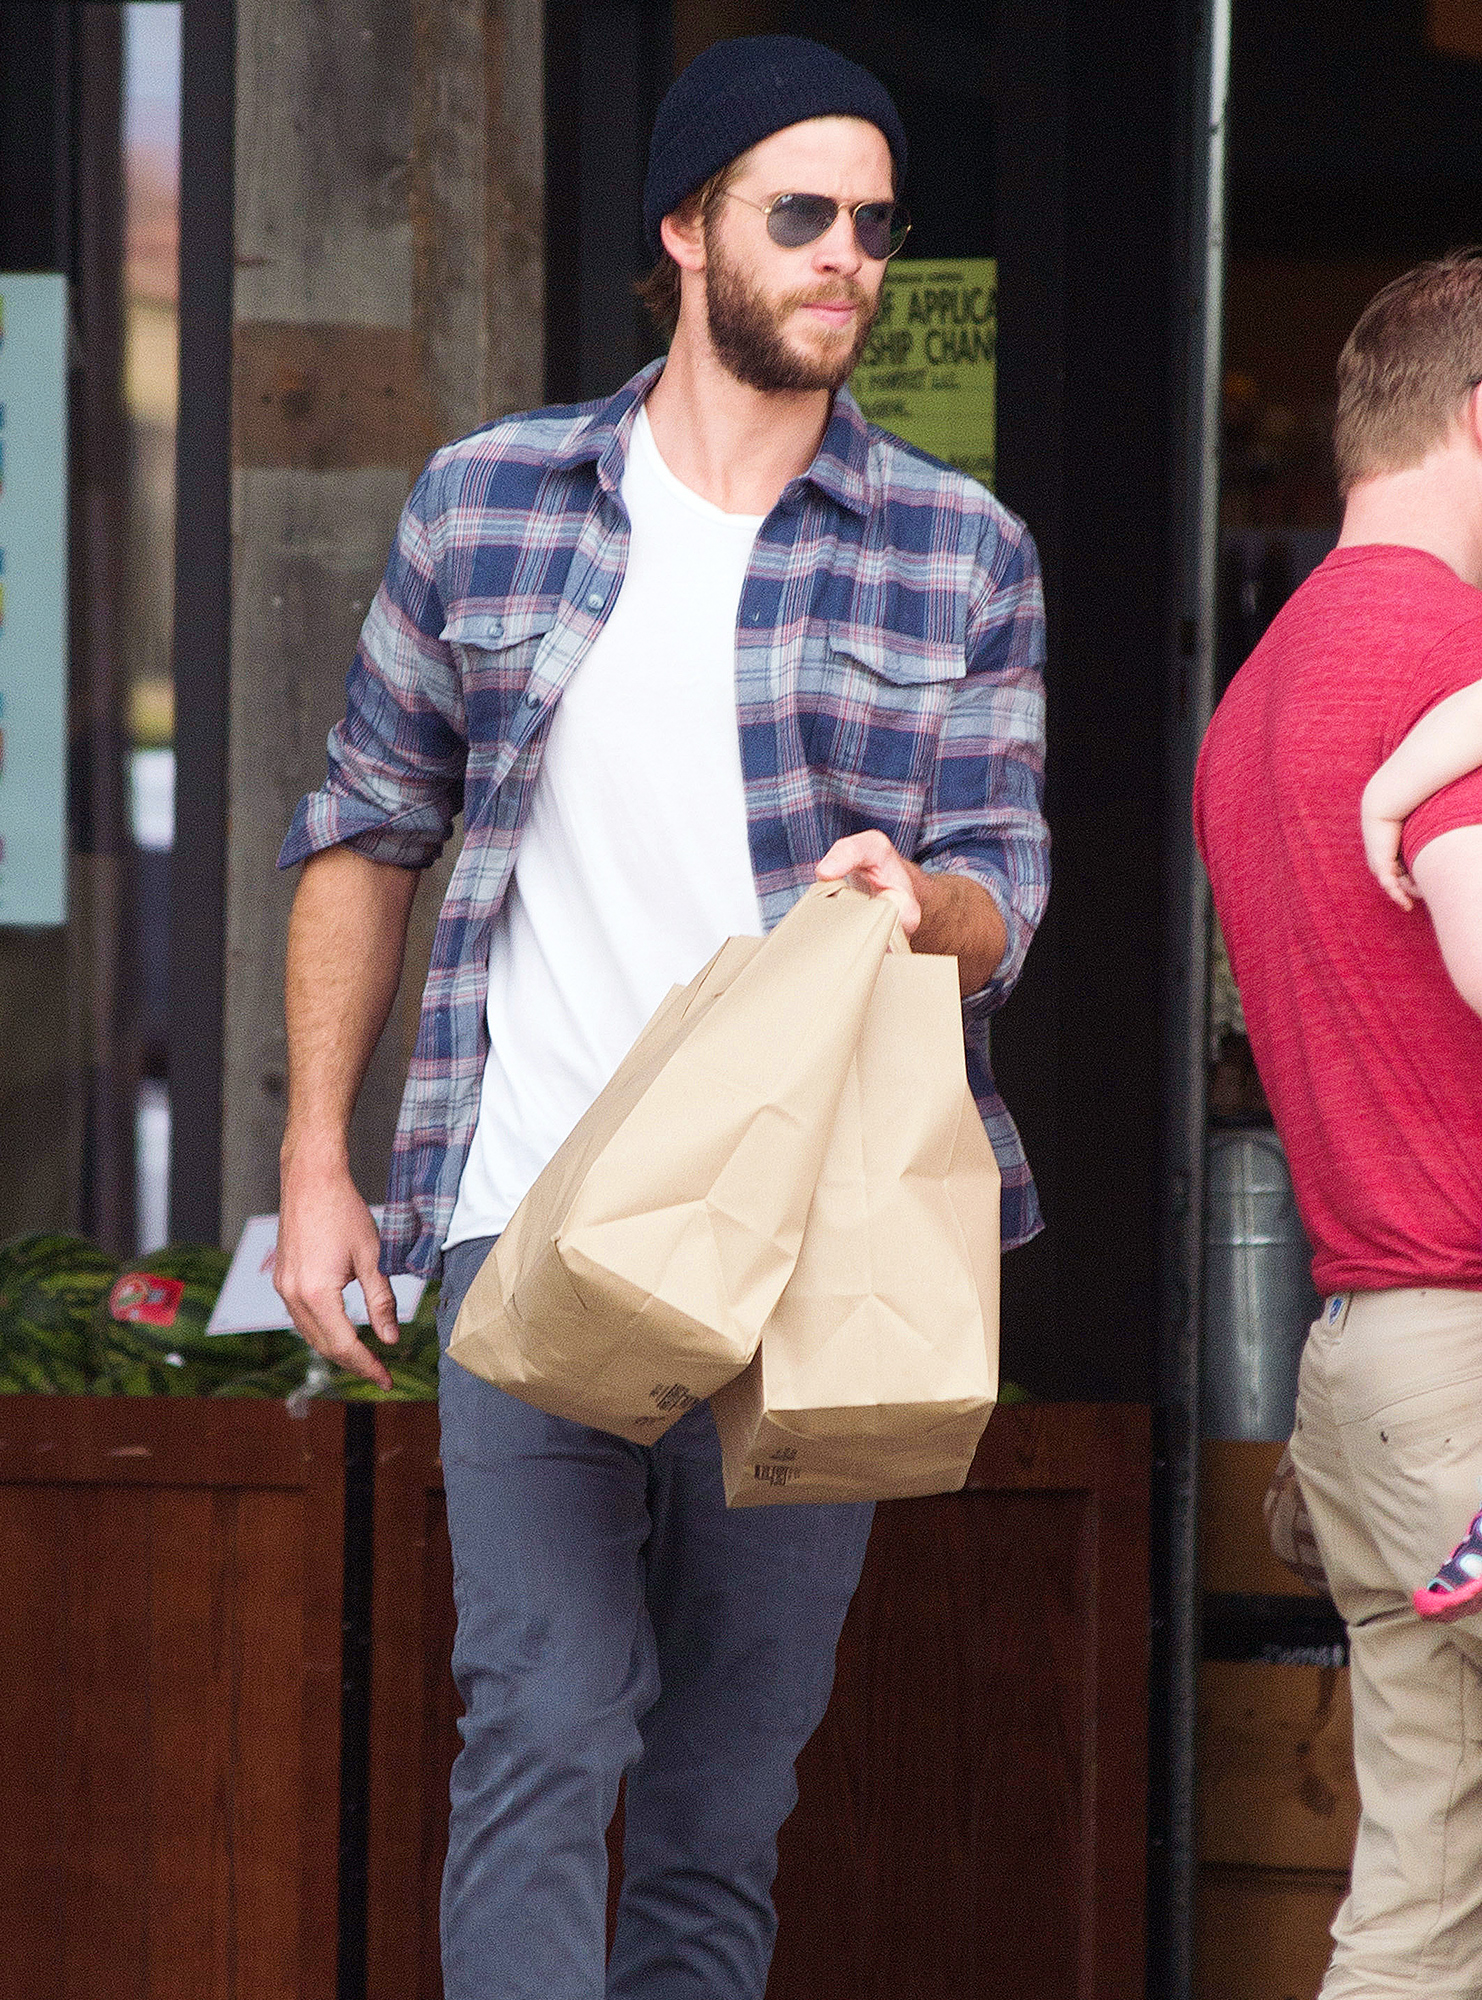 EXCLUSIVE: Liam Hemsworth is Spotted Grabbing Some Groceries in LA